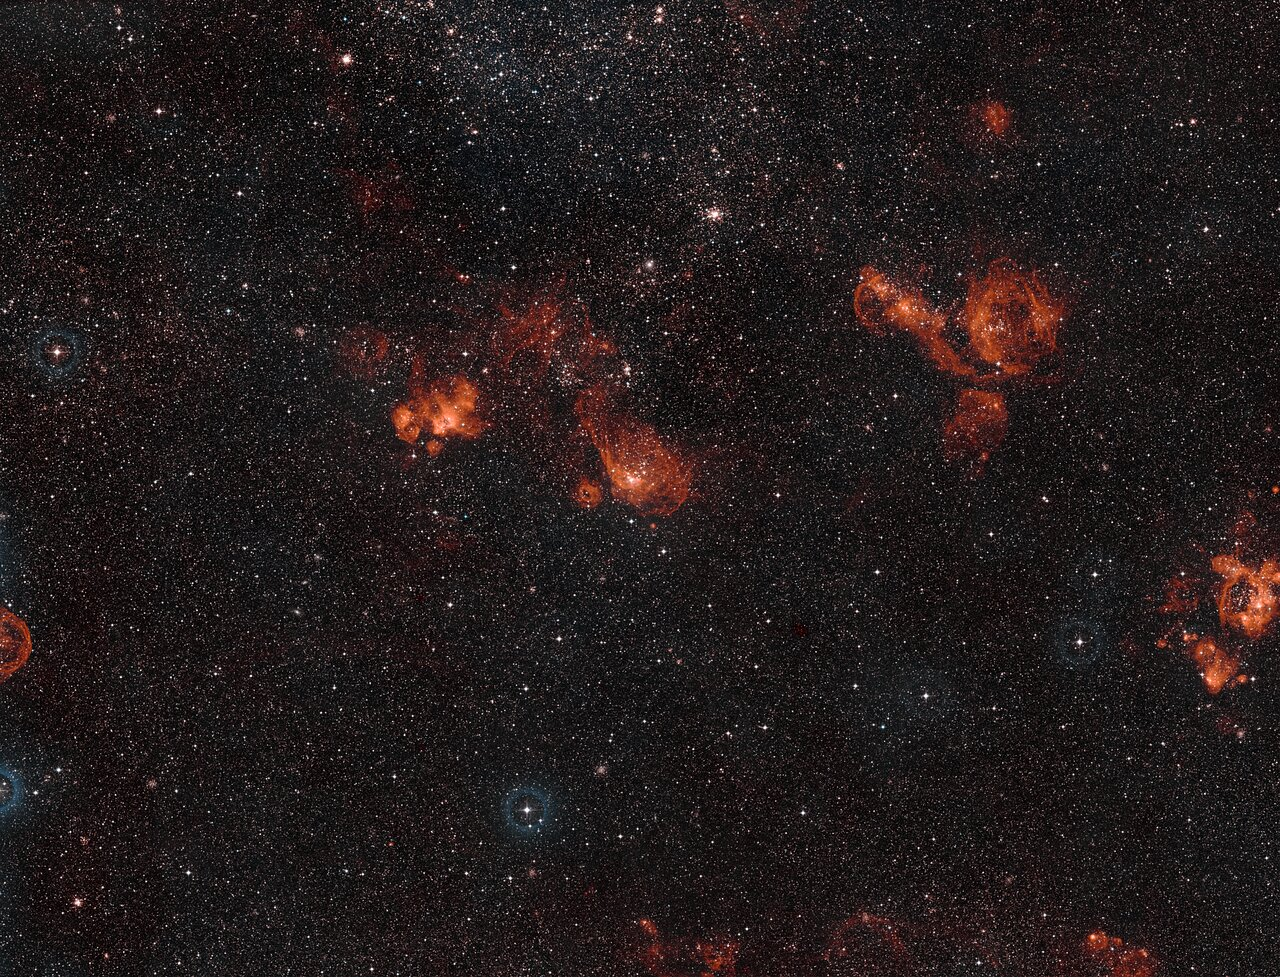 Wide-field view of NGC 2014 and NGC 2020 in the Large Magellanic Cloud (Ground-based Image)